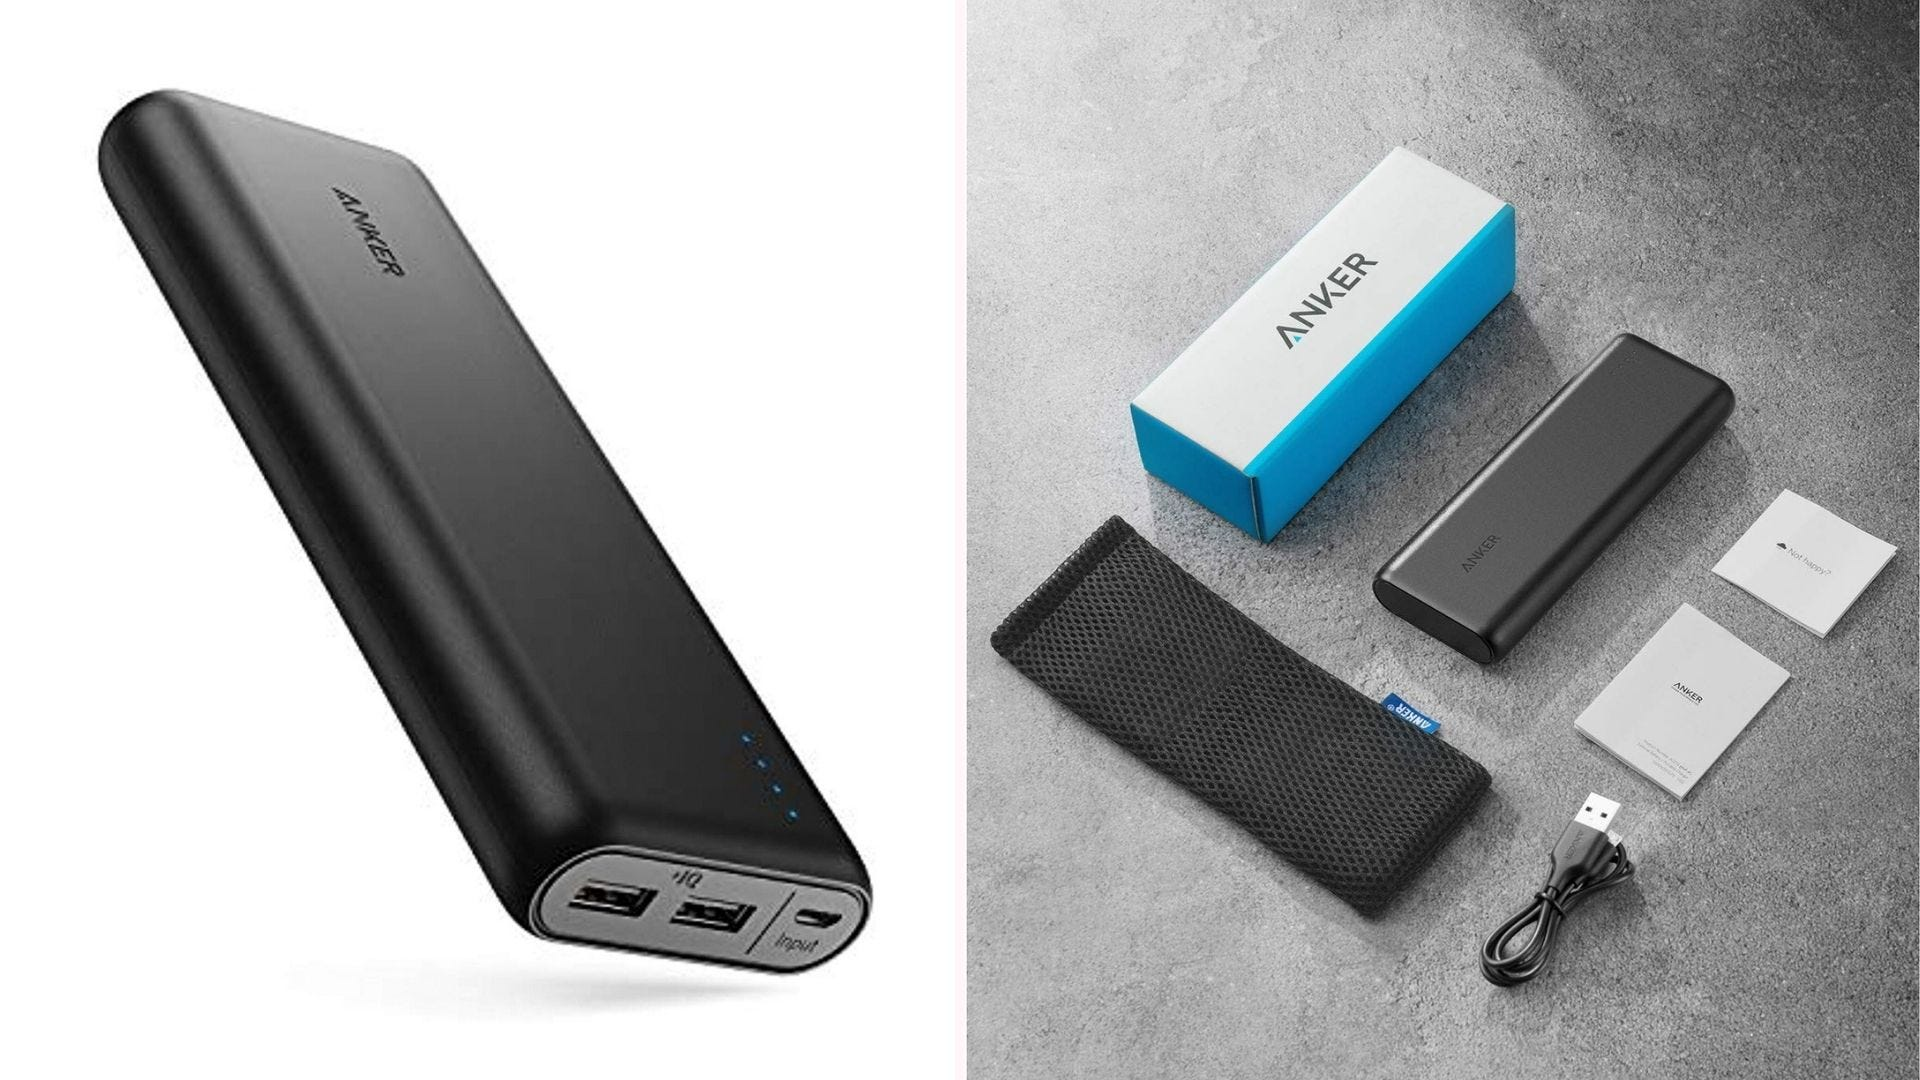 On the left a portable Anker charger and on the right the charger next to a travel case and other accessories.